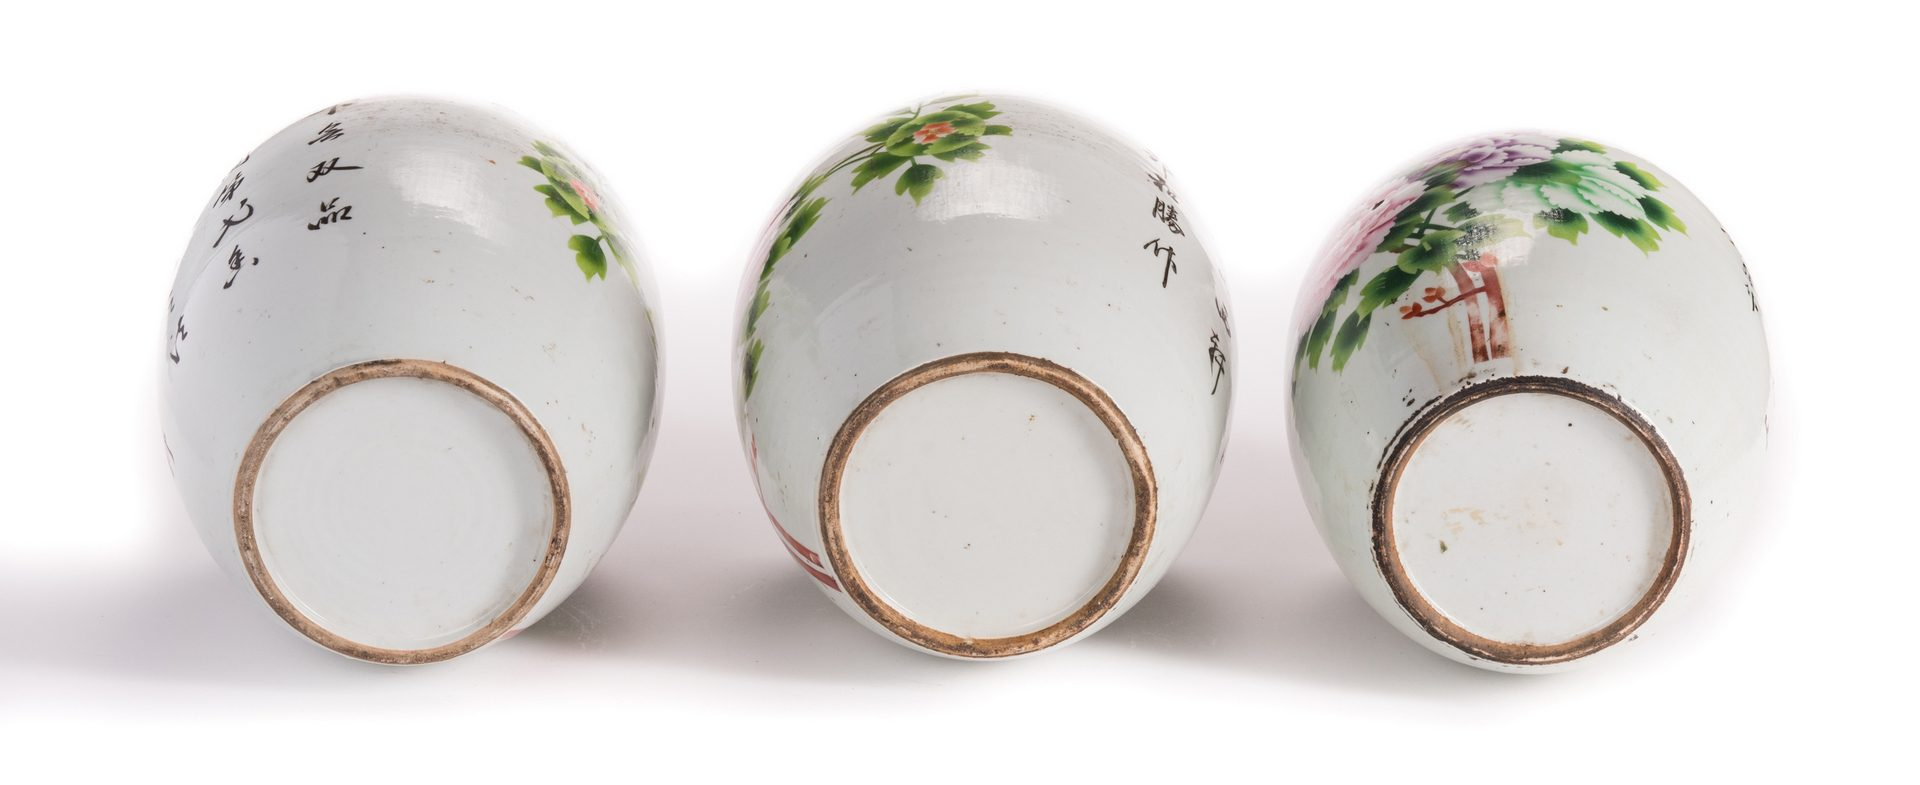 Lot 186: 3 Chinese Porcelain Ginger Jars w/Peonies